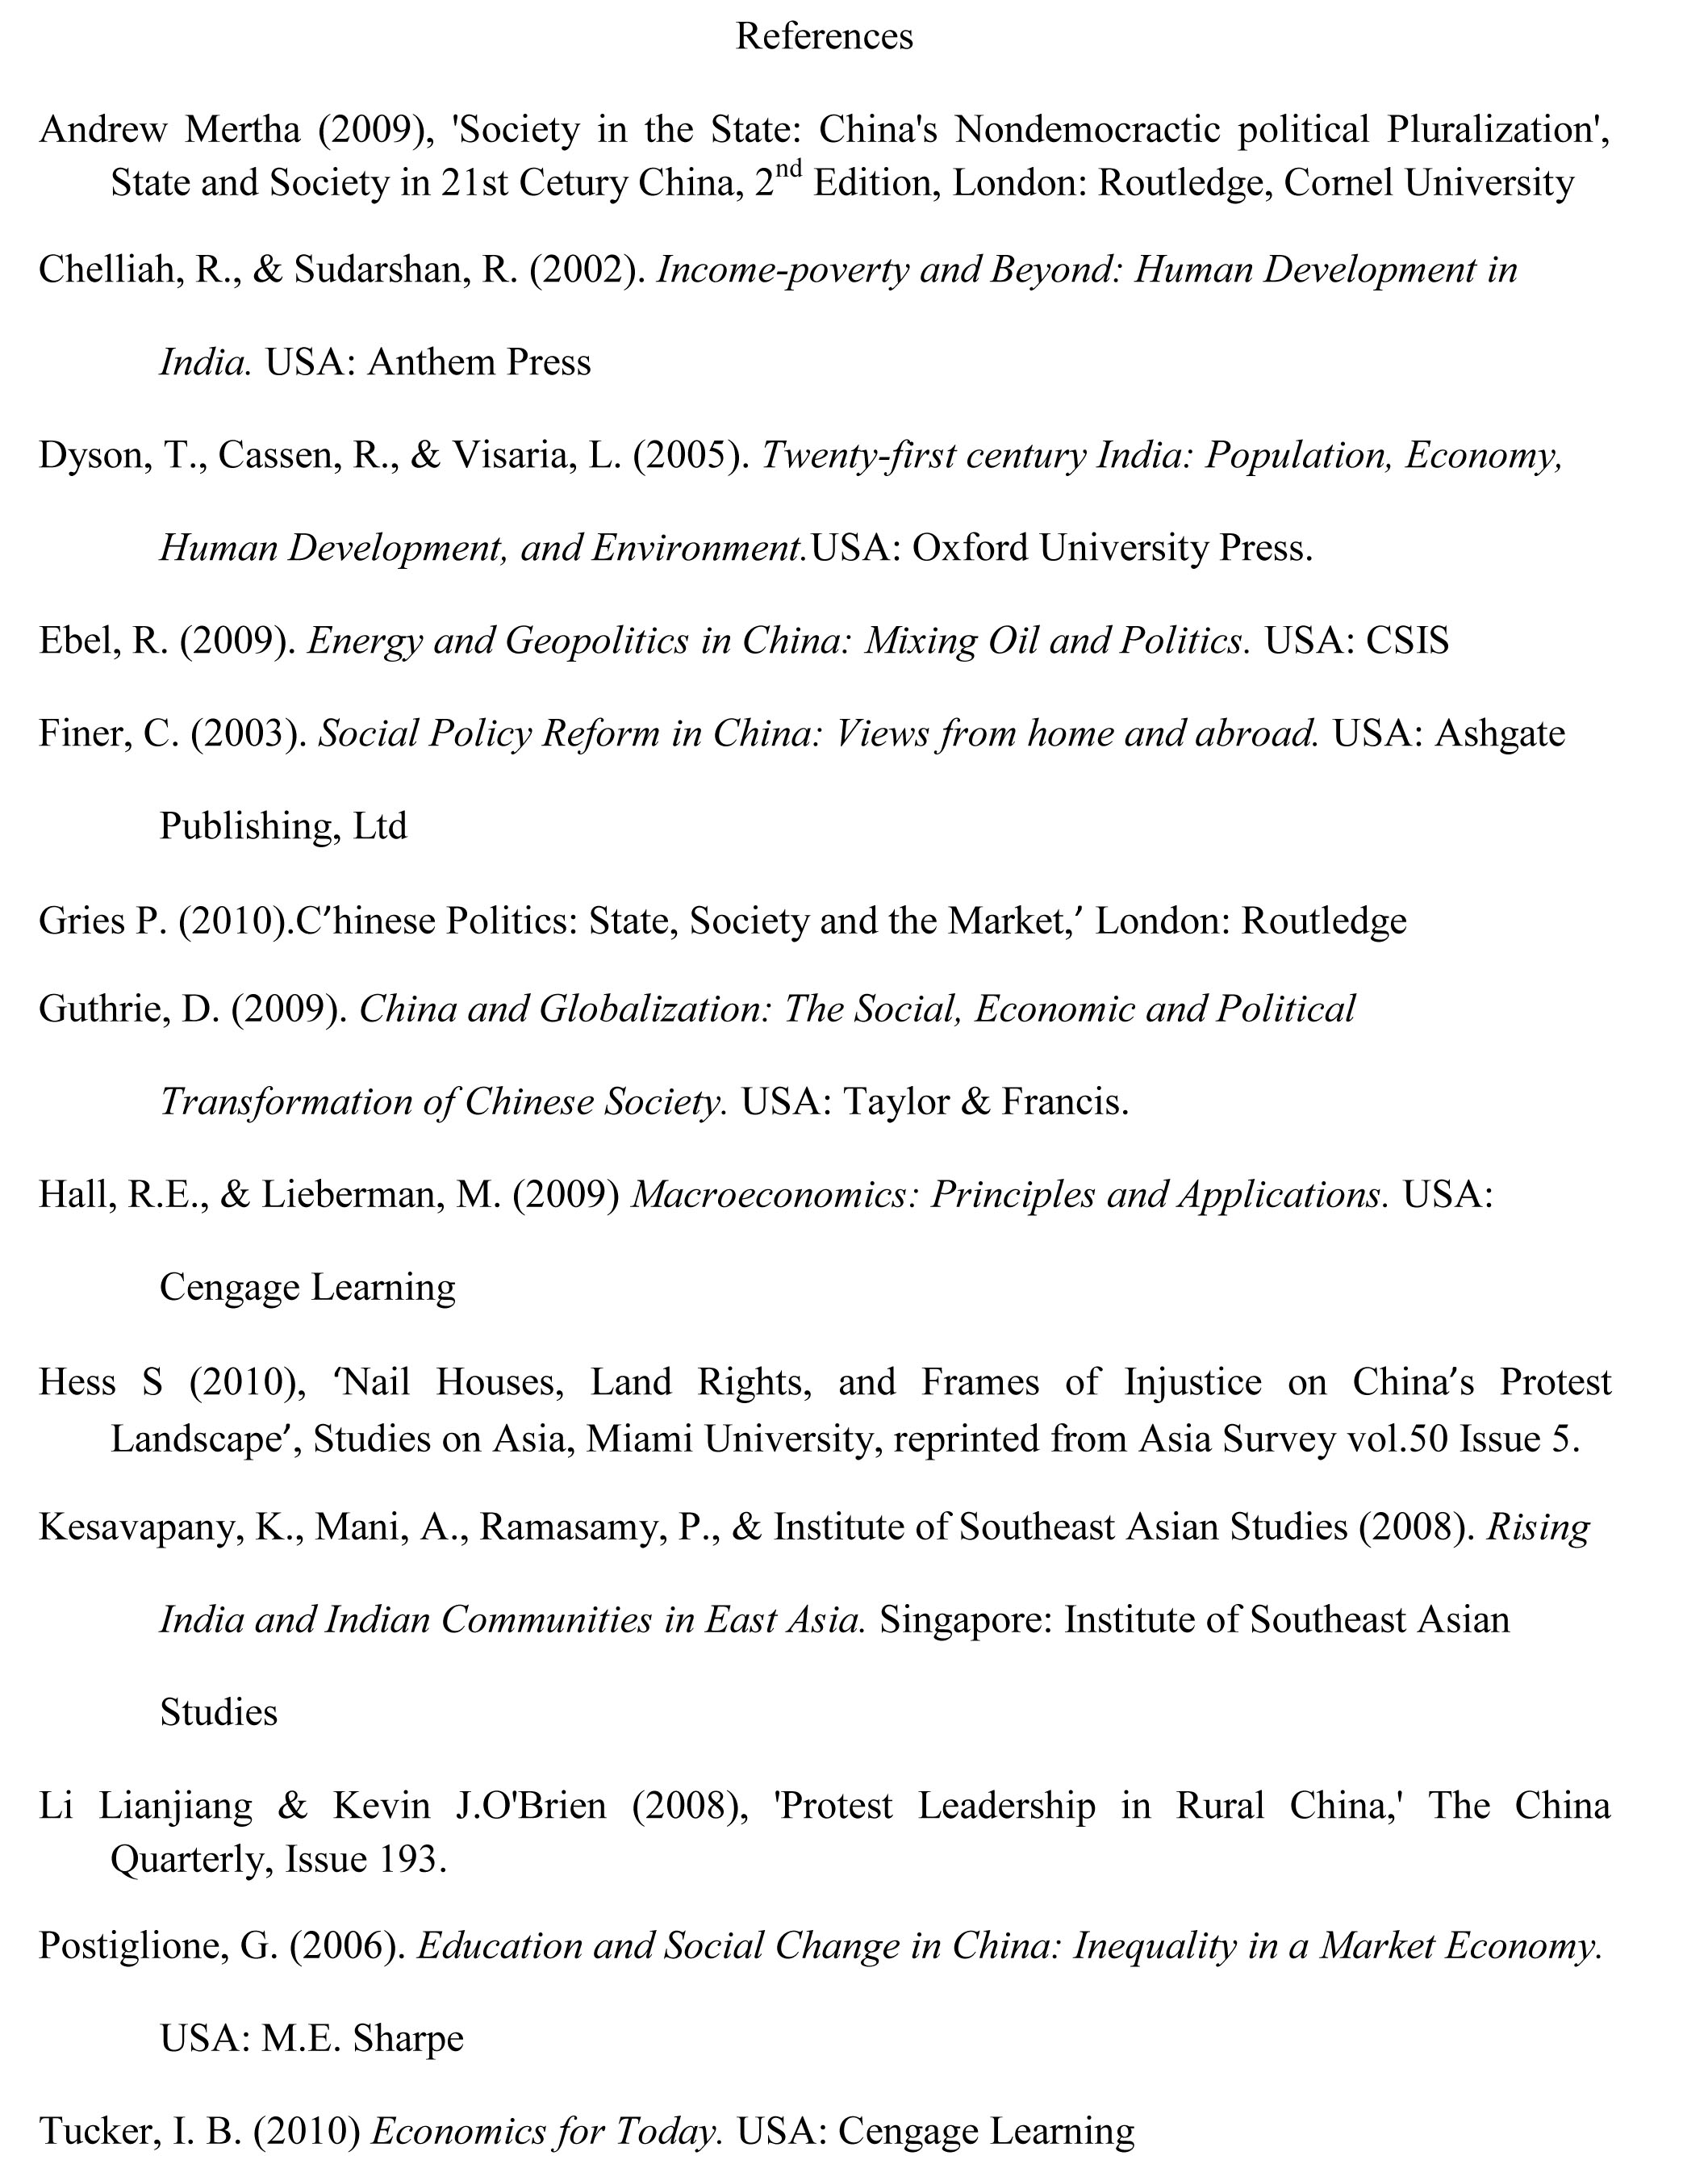 Cited Essay Example APA Reference List